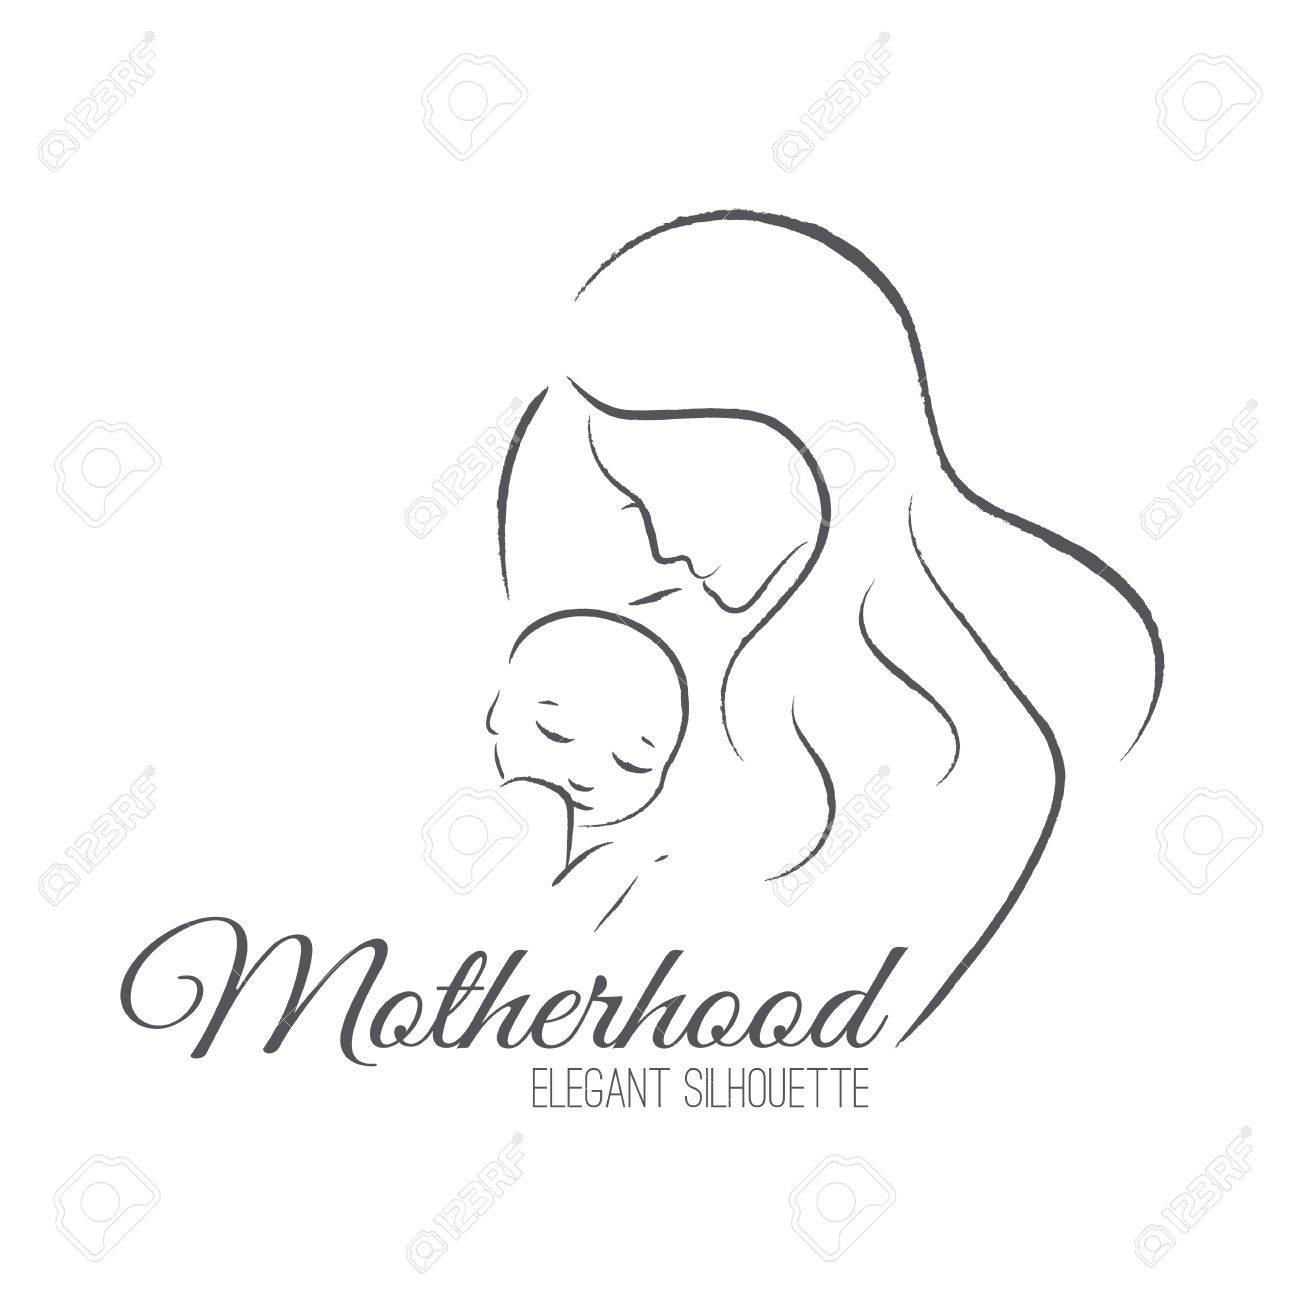 Elegant mother and newborn baby silhouettes in a linear sketch style motherhood mothers day